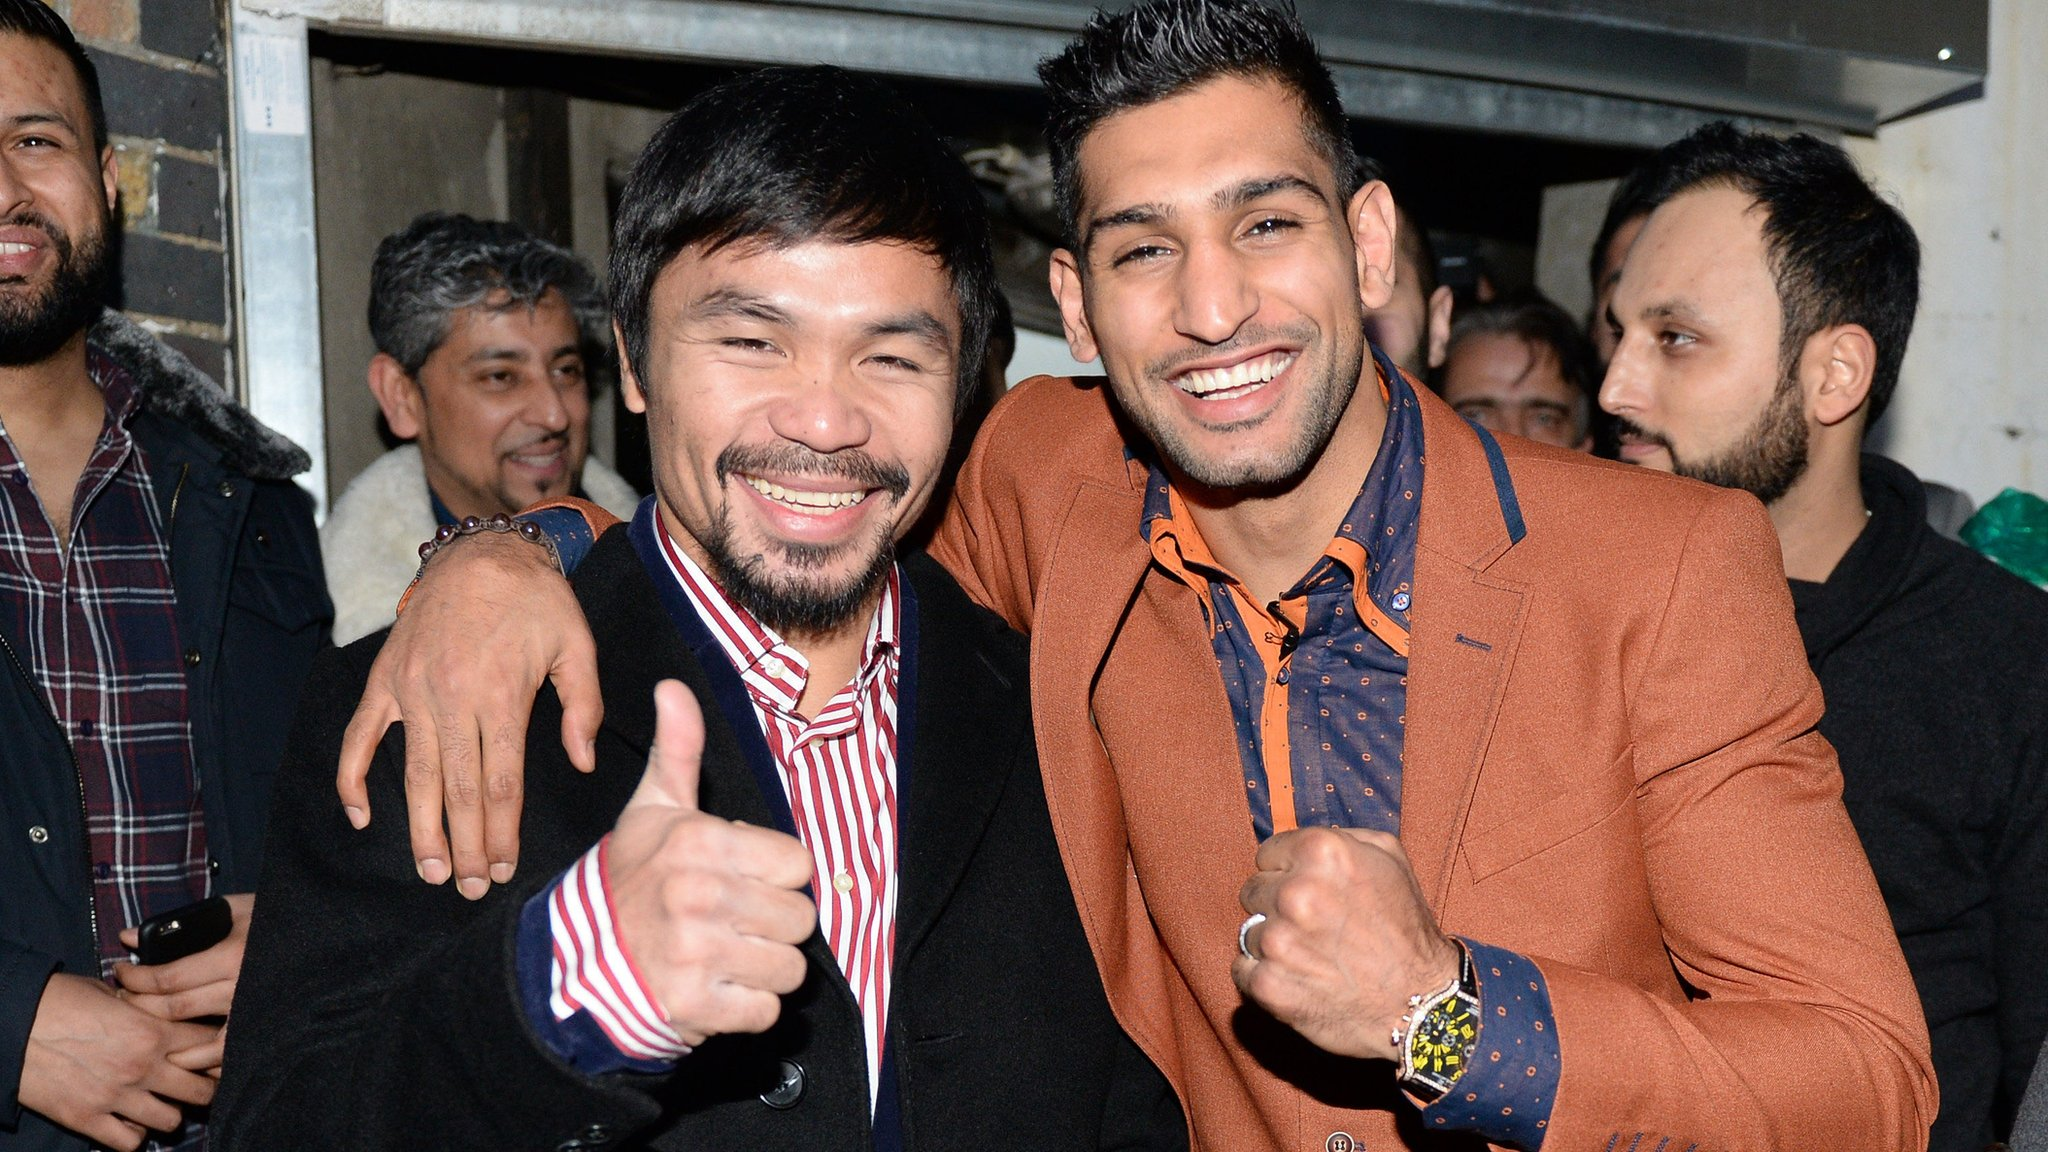 Manny Pacquiao and Amir Khan to fight in April